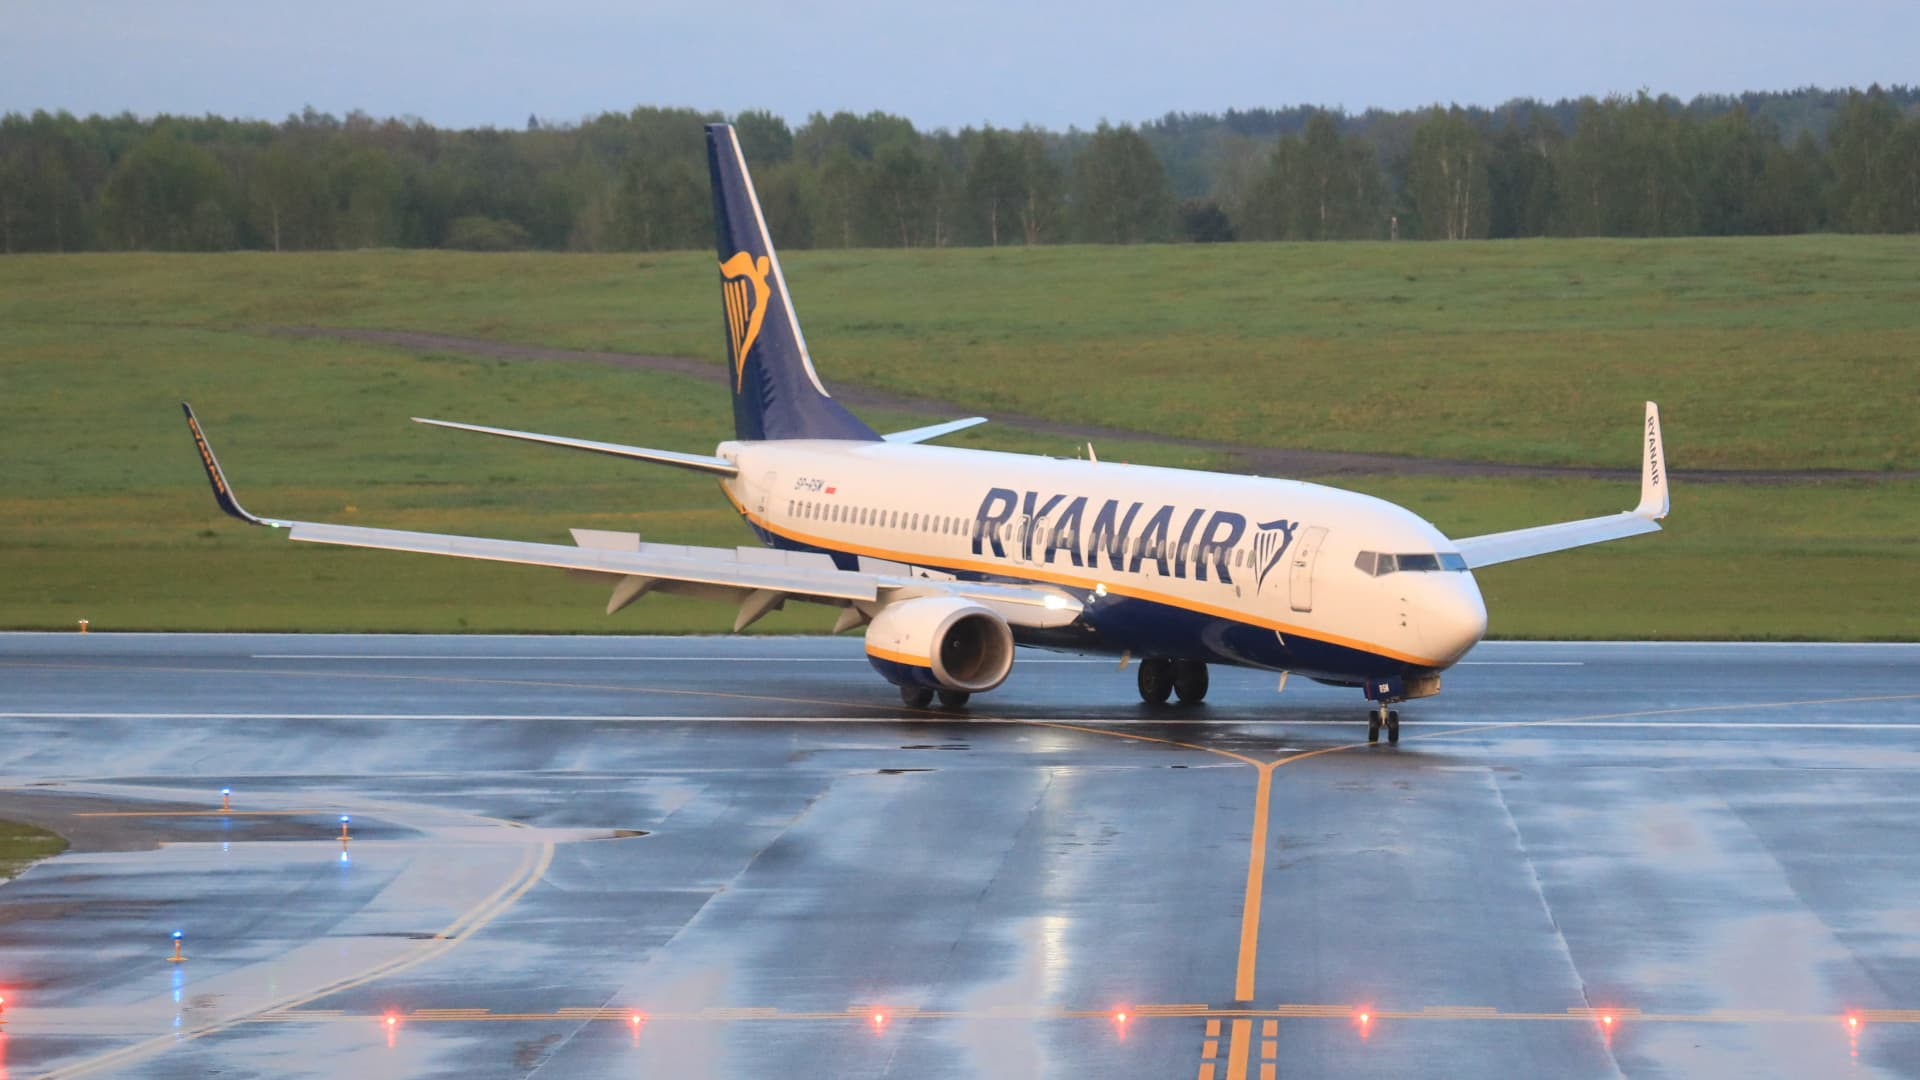 European Union leaders will discuss toughening their sanctions regime against Belarus on May 24 at their planned summit, after Minsk diverted the Ryanair passenger flight flying from Athens to Vilnius and arrested Belarusian opposition activist Roman Protasevich.